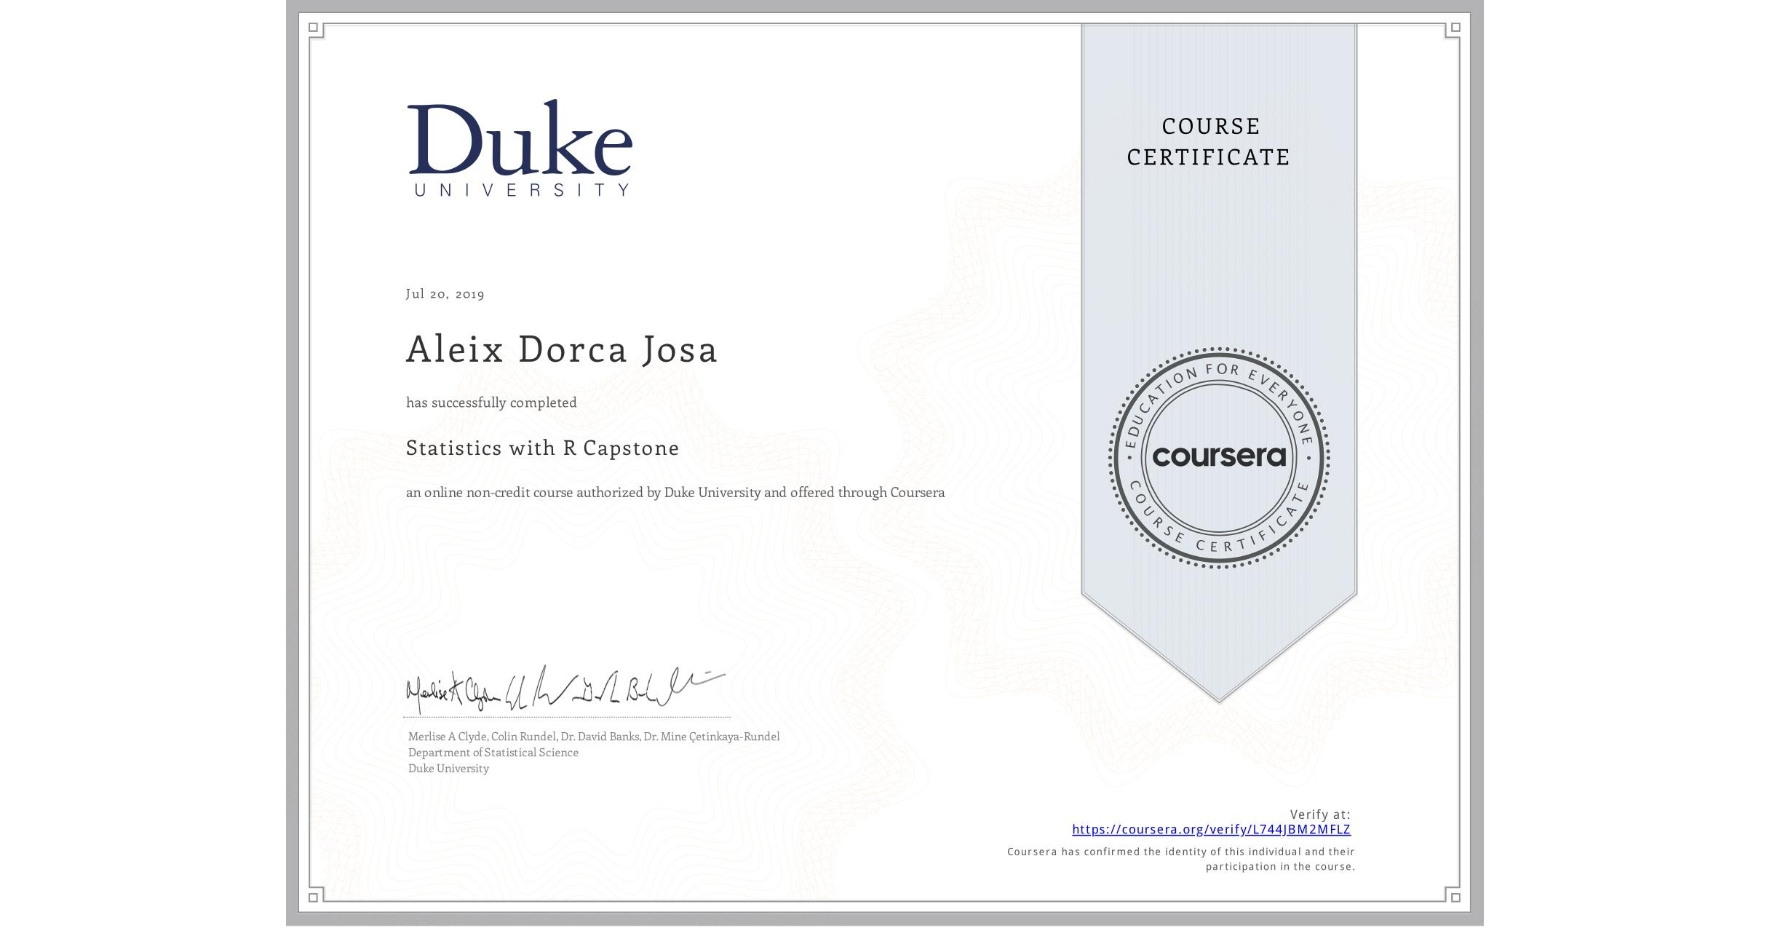 View certificate for Aleix Dorca Josa, Statistics with R Capstone, an online non-credit course authorized by Duke University and offered through Coursera